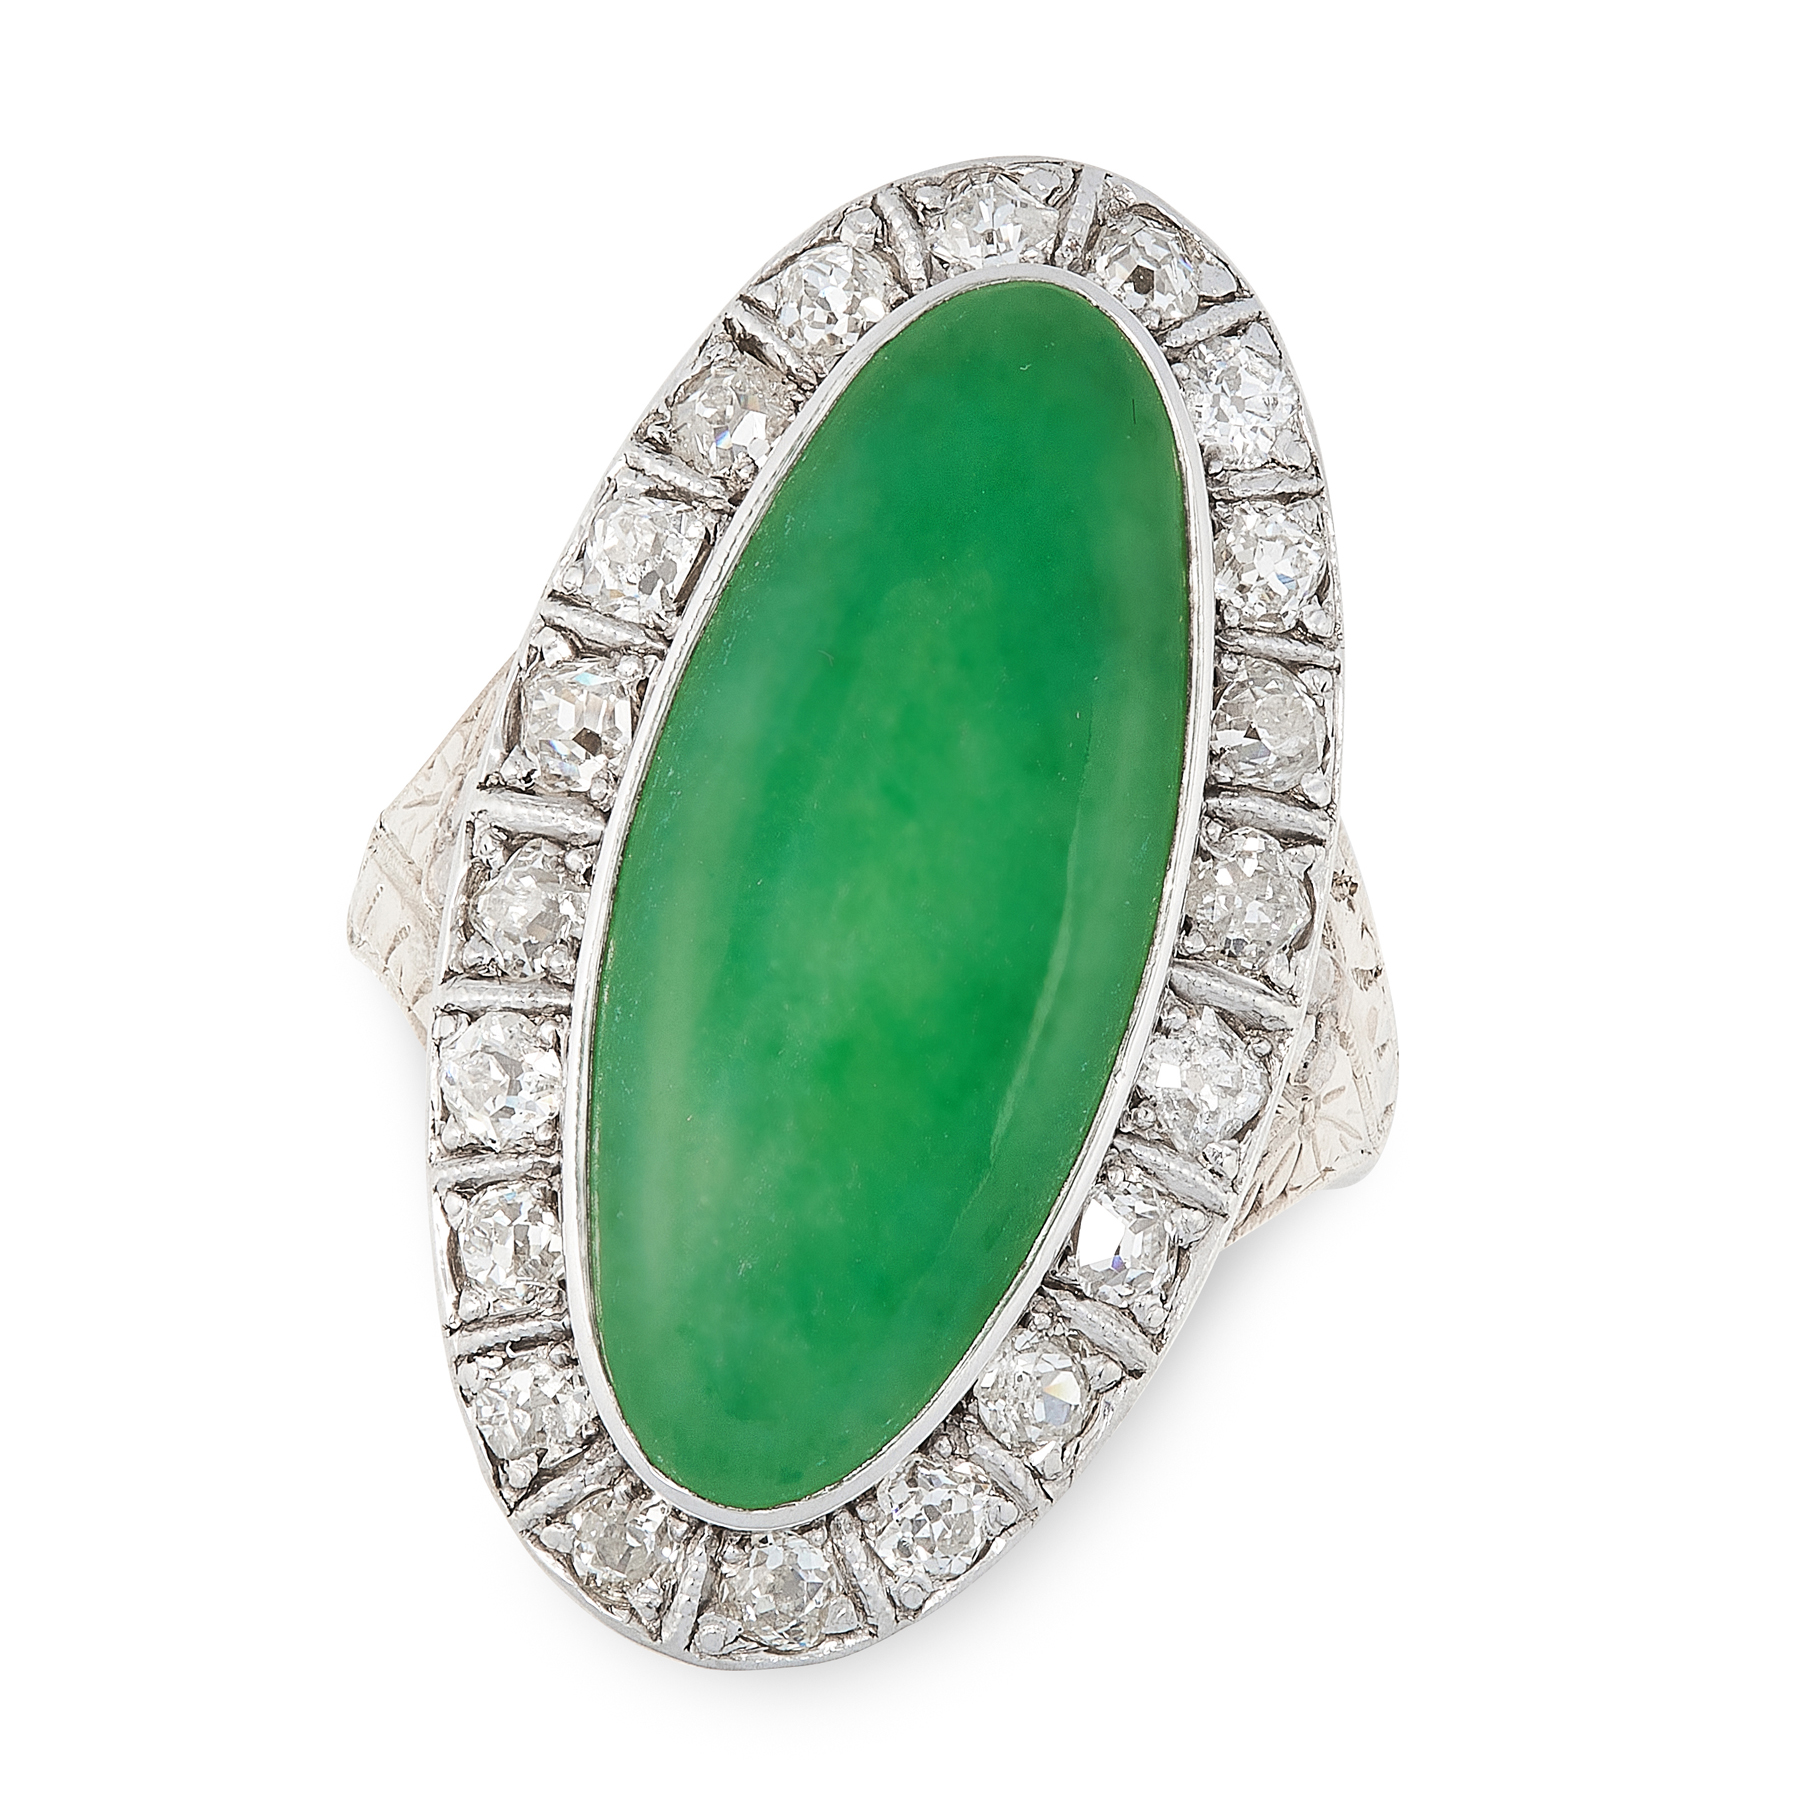 AN ANTIQUE JADEITE JADE AND DIAMOND RING in yellow gold and silver, set with an oval jadeite